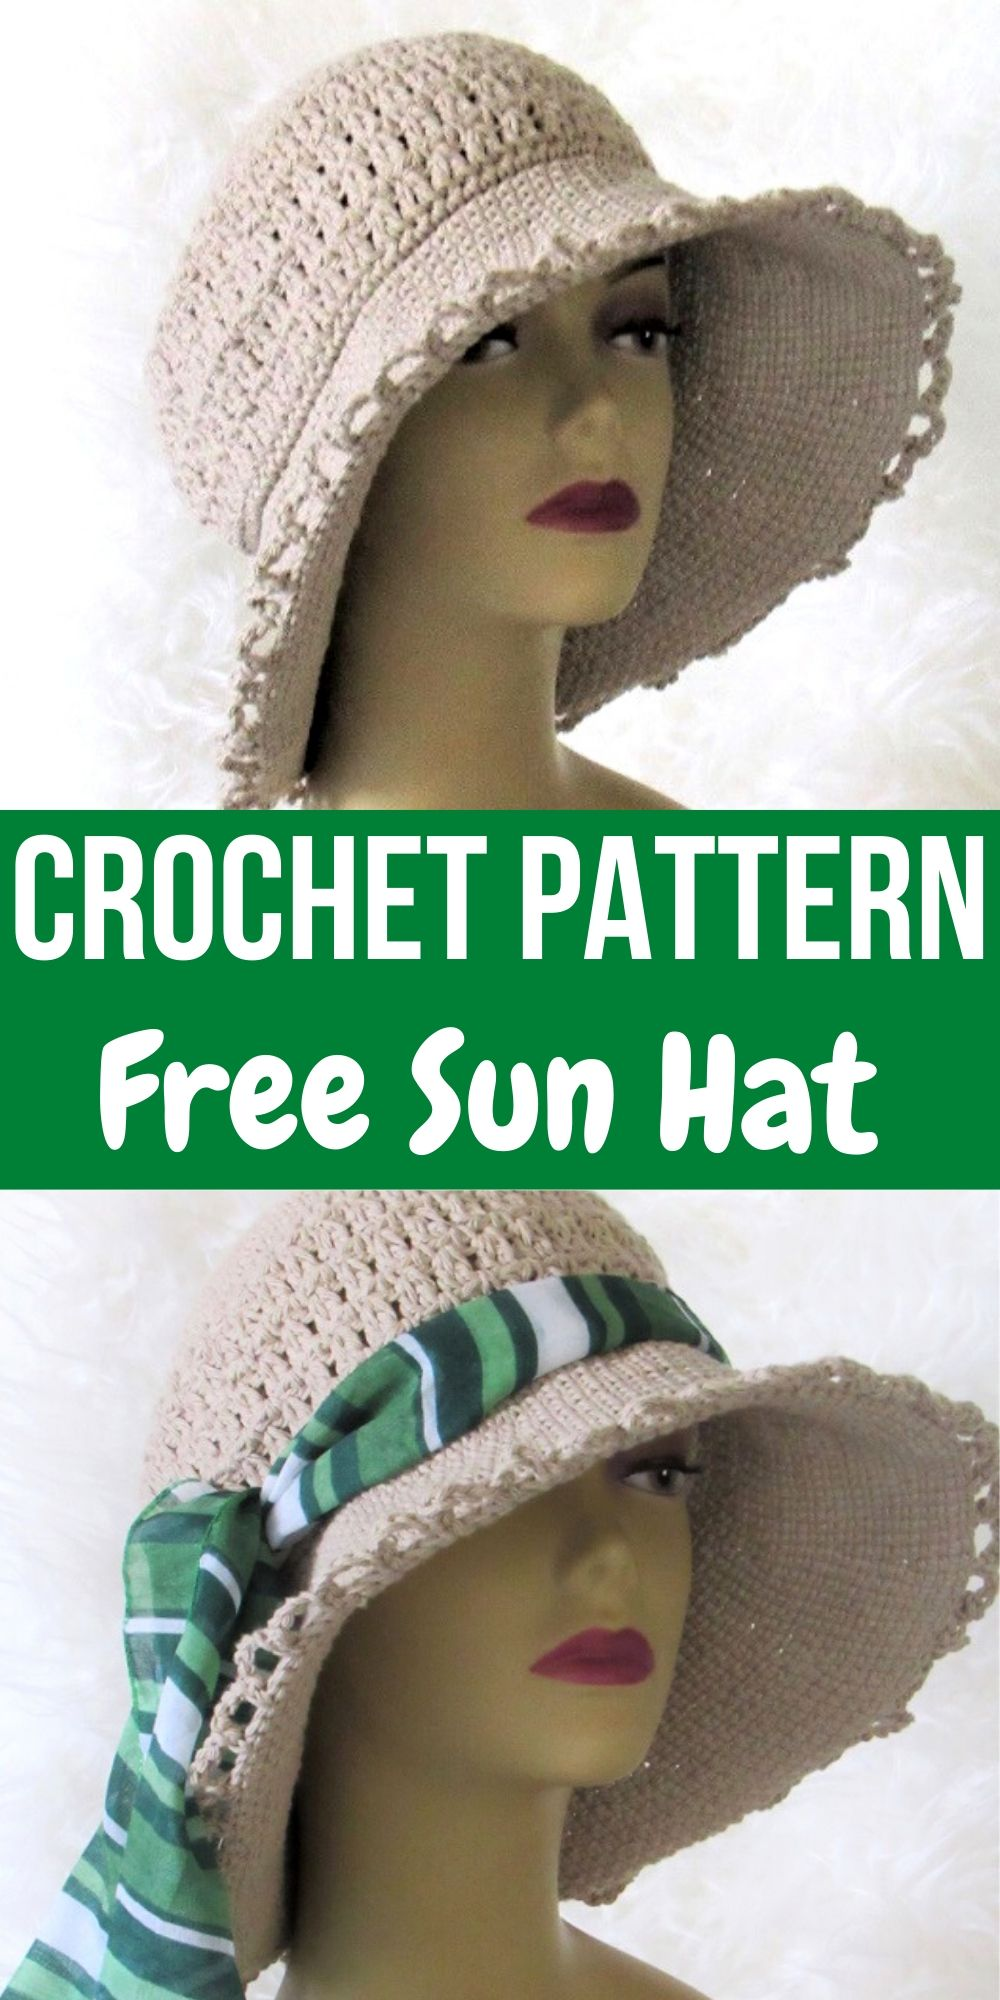 Welcome summer in this retro-style crochet sun hat. The free pattern is easy and great for beginners. It will make a perfect beach hat. #crochetsunhatfreepattern, #crochetsunhatwoman